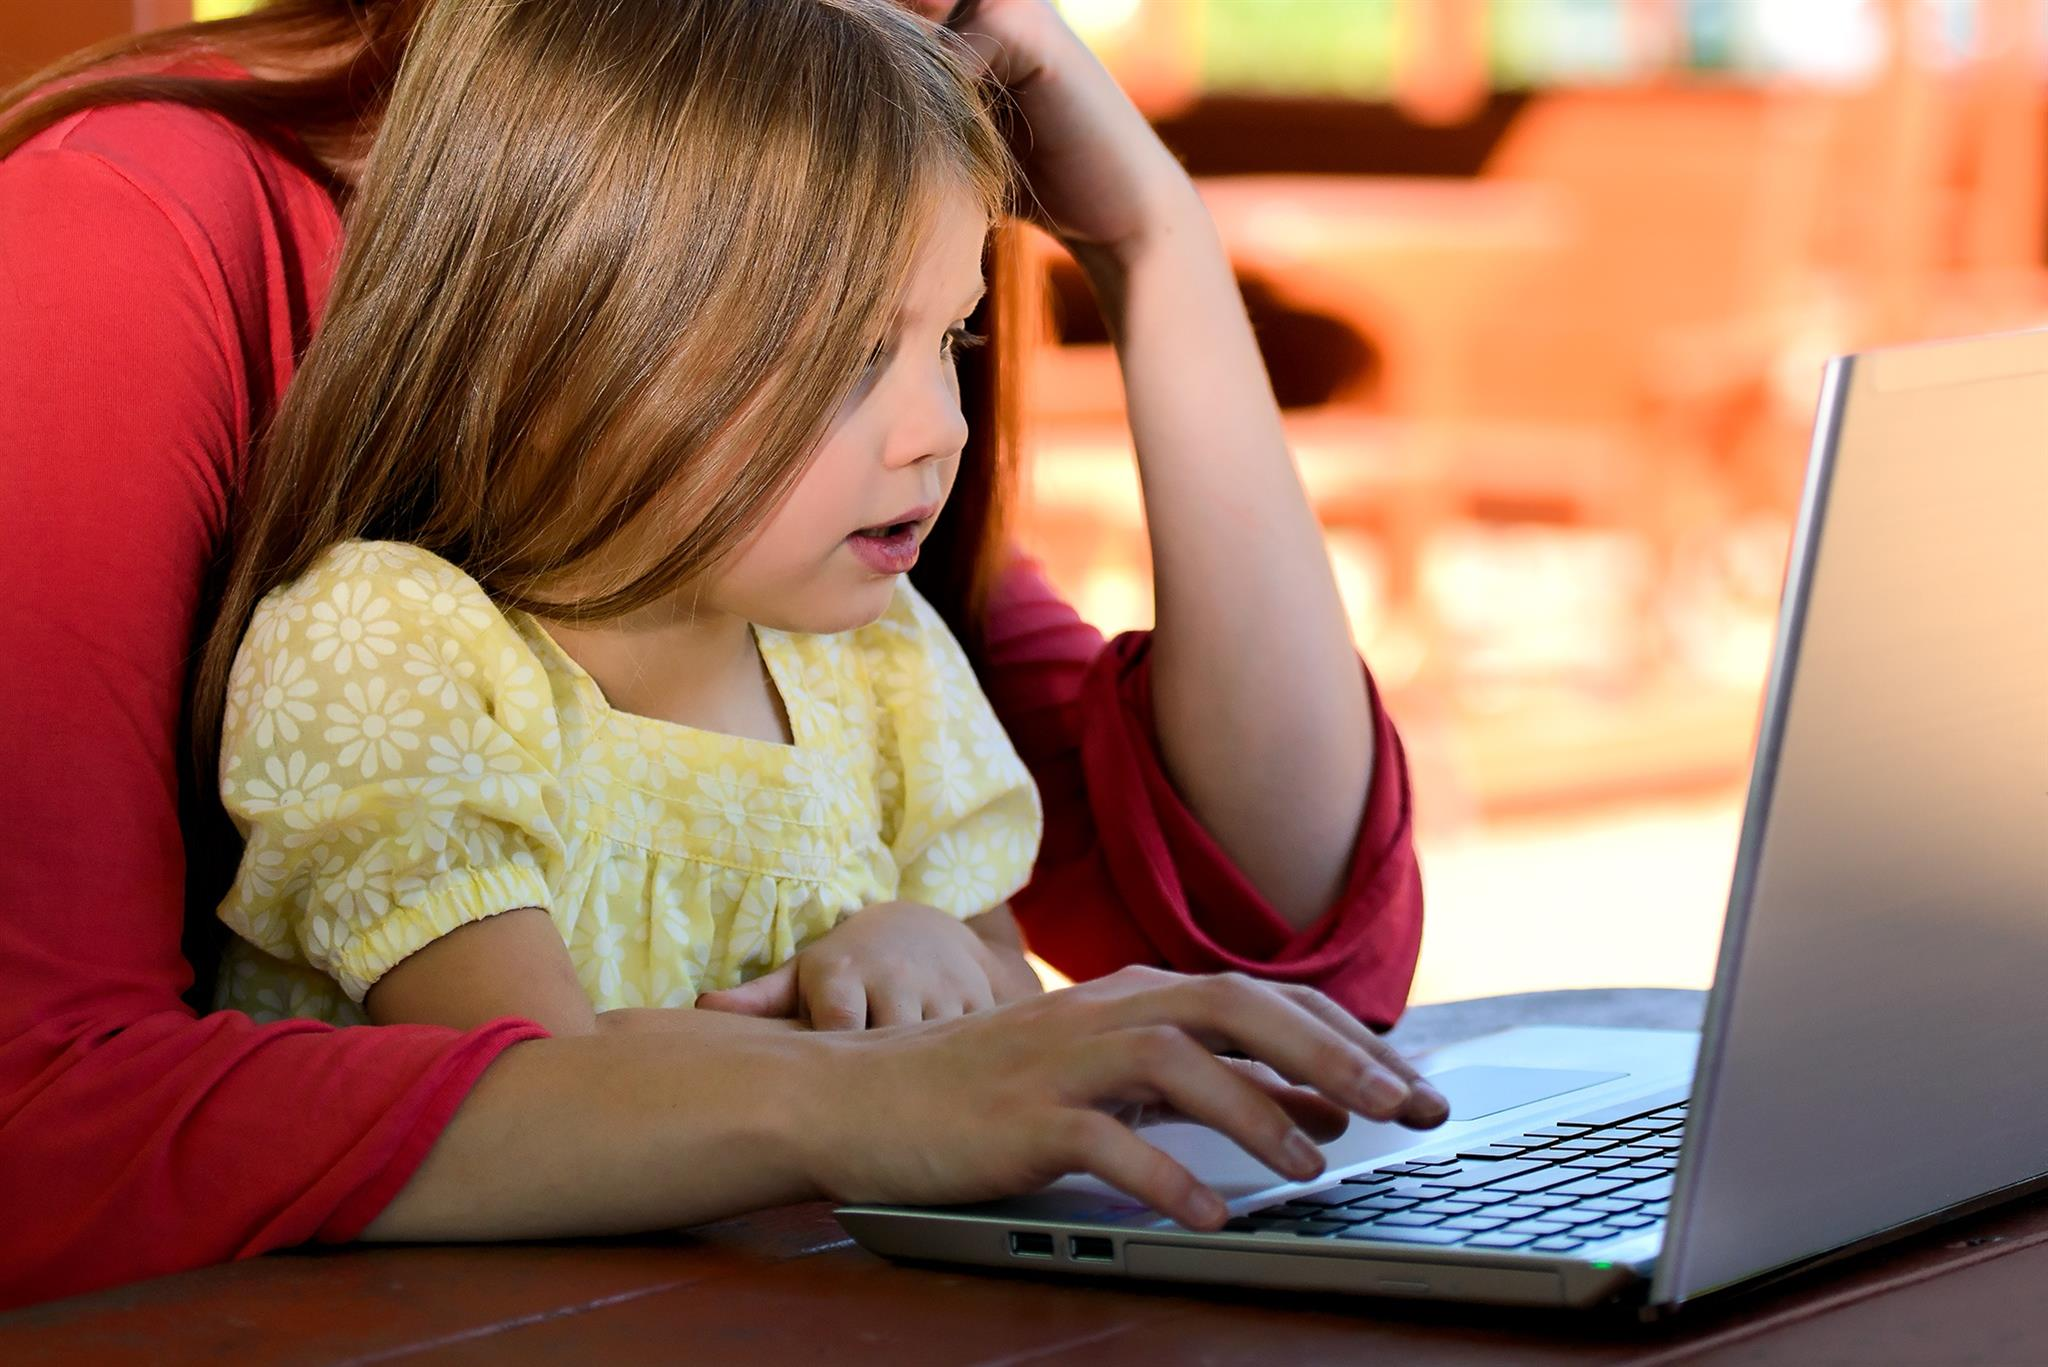 Programming is a useful skill and great fun for children